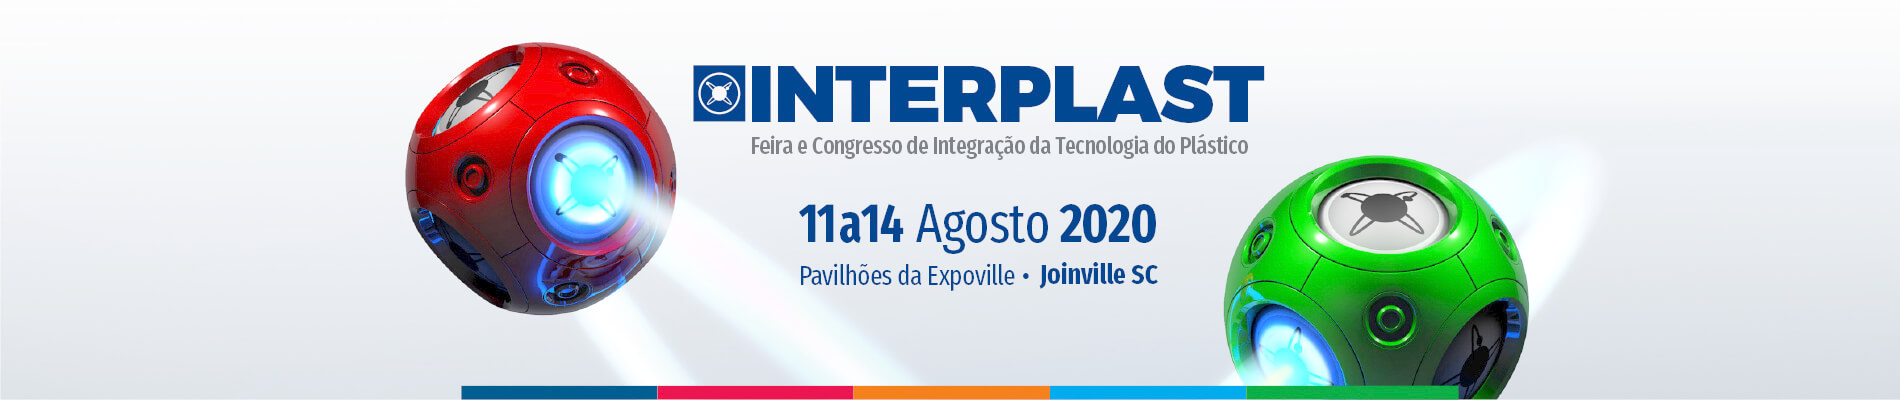 Banner_1_Interplast_Slide